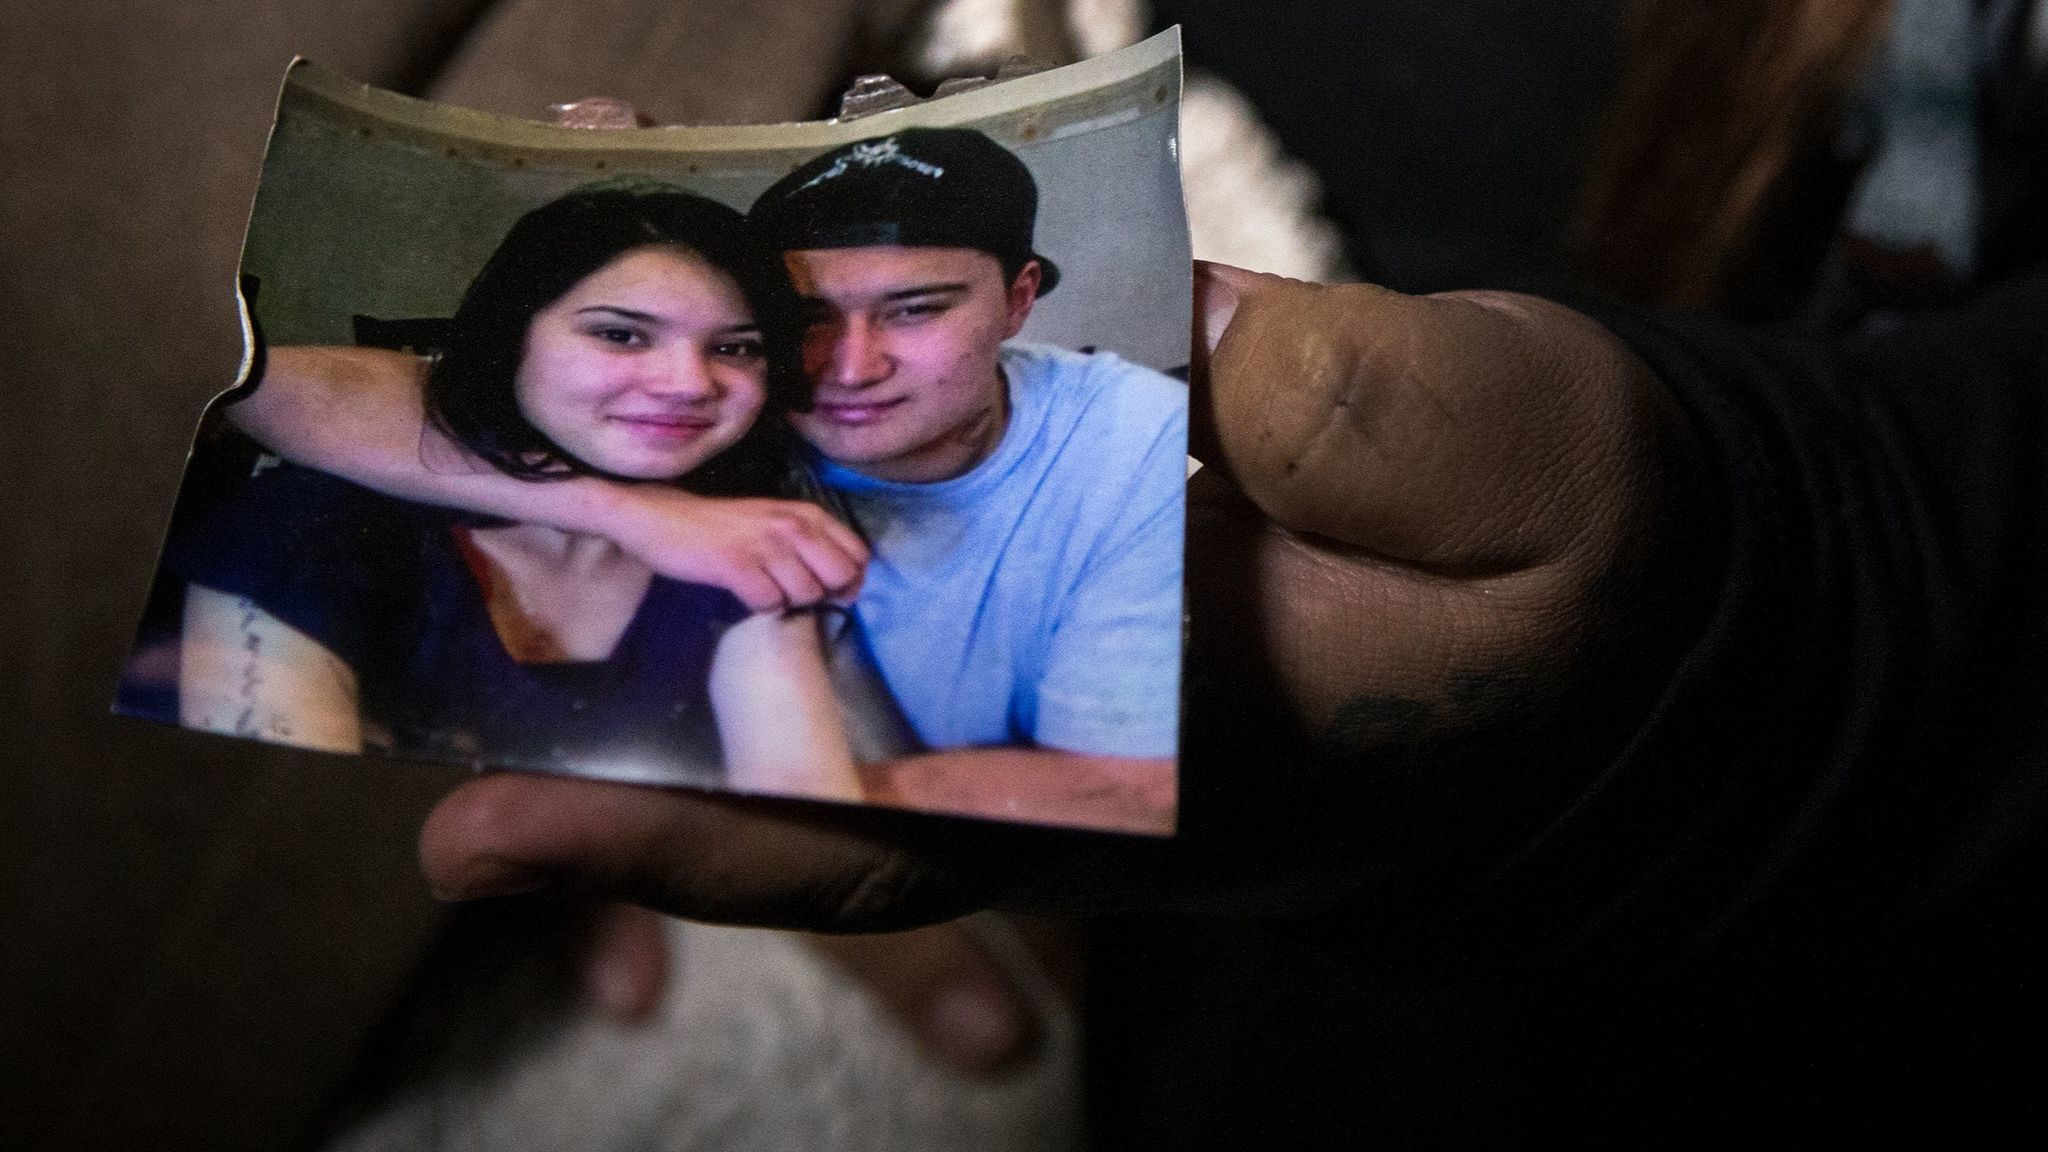 Ariel Bojorquez and his girlfriend, Rosa Isela Chavez, were shot and killed while driving near the intersection of 29th Street and Pershing Avenue in San Bernardino.